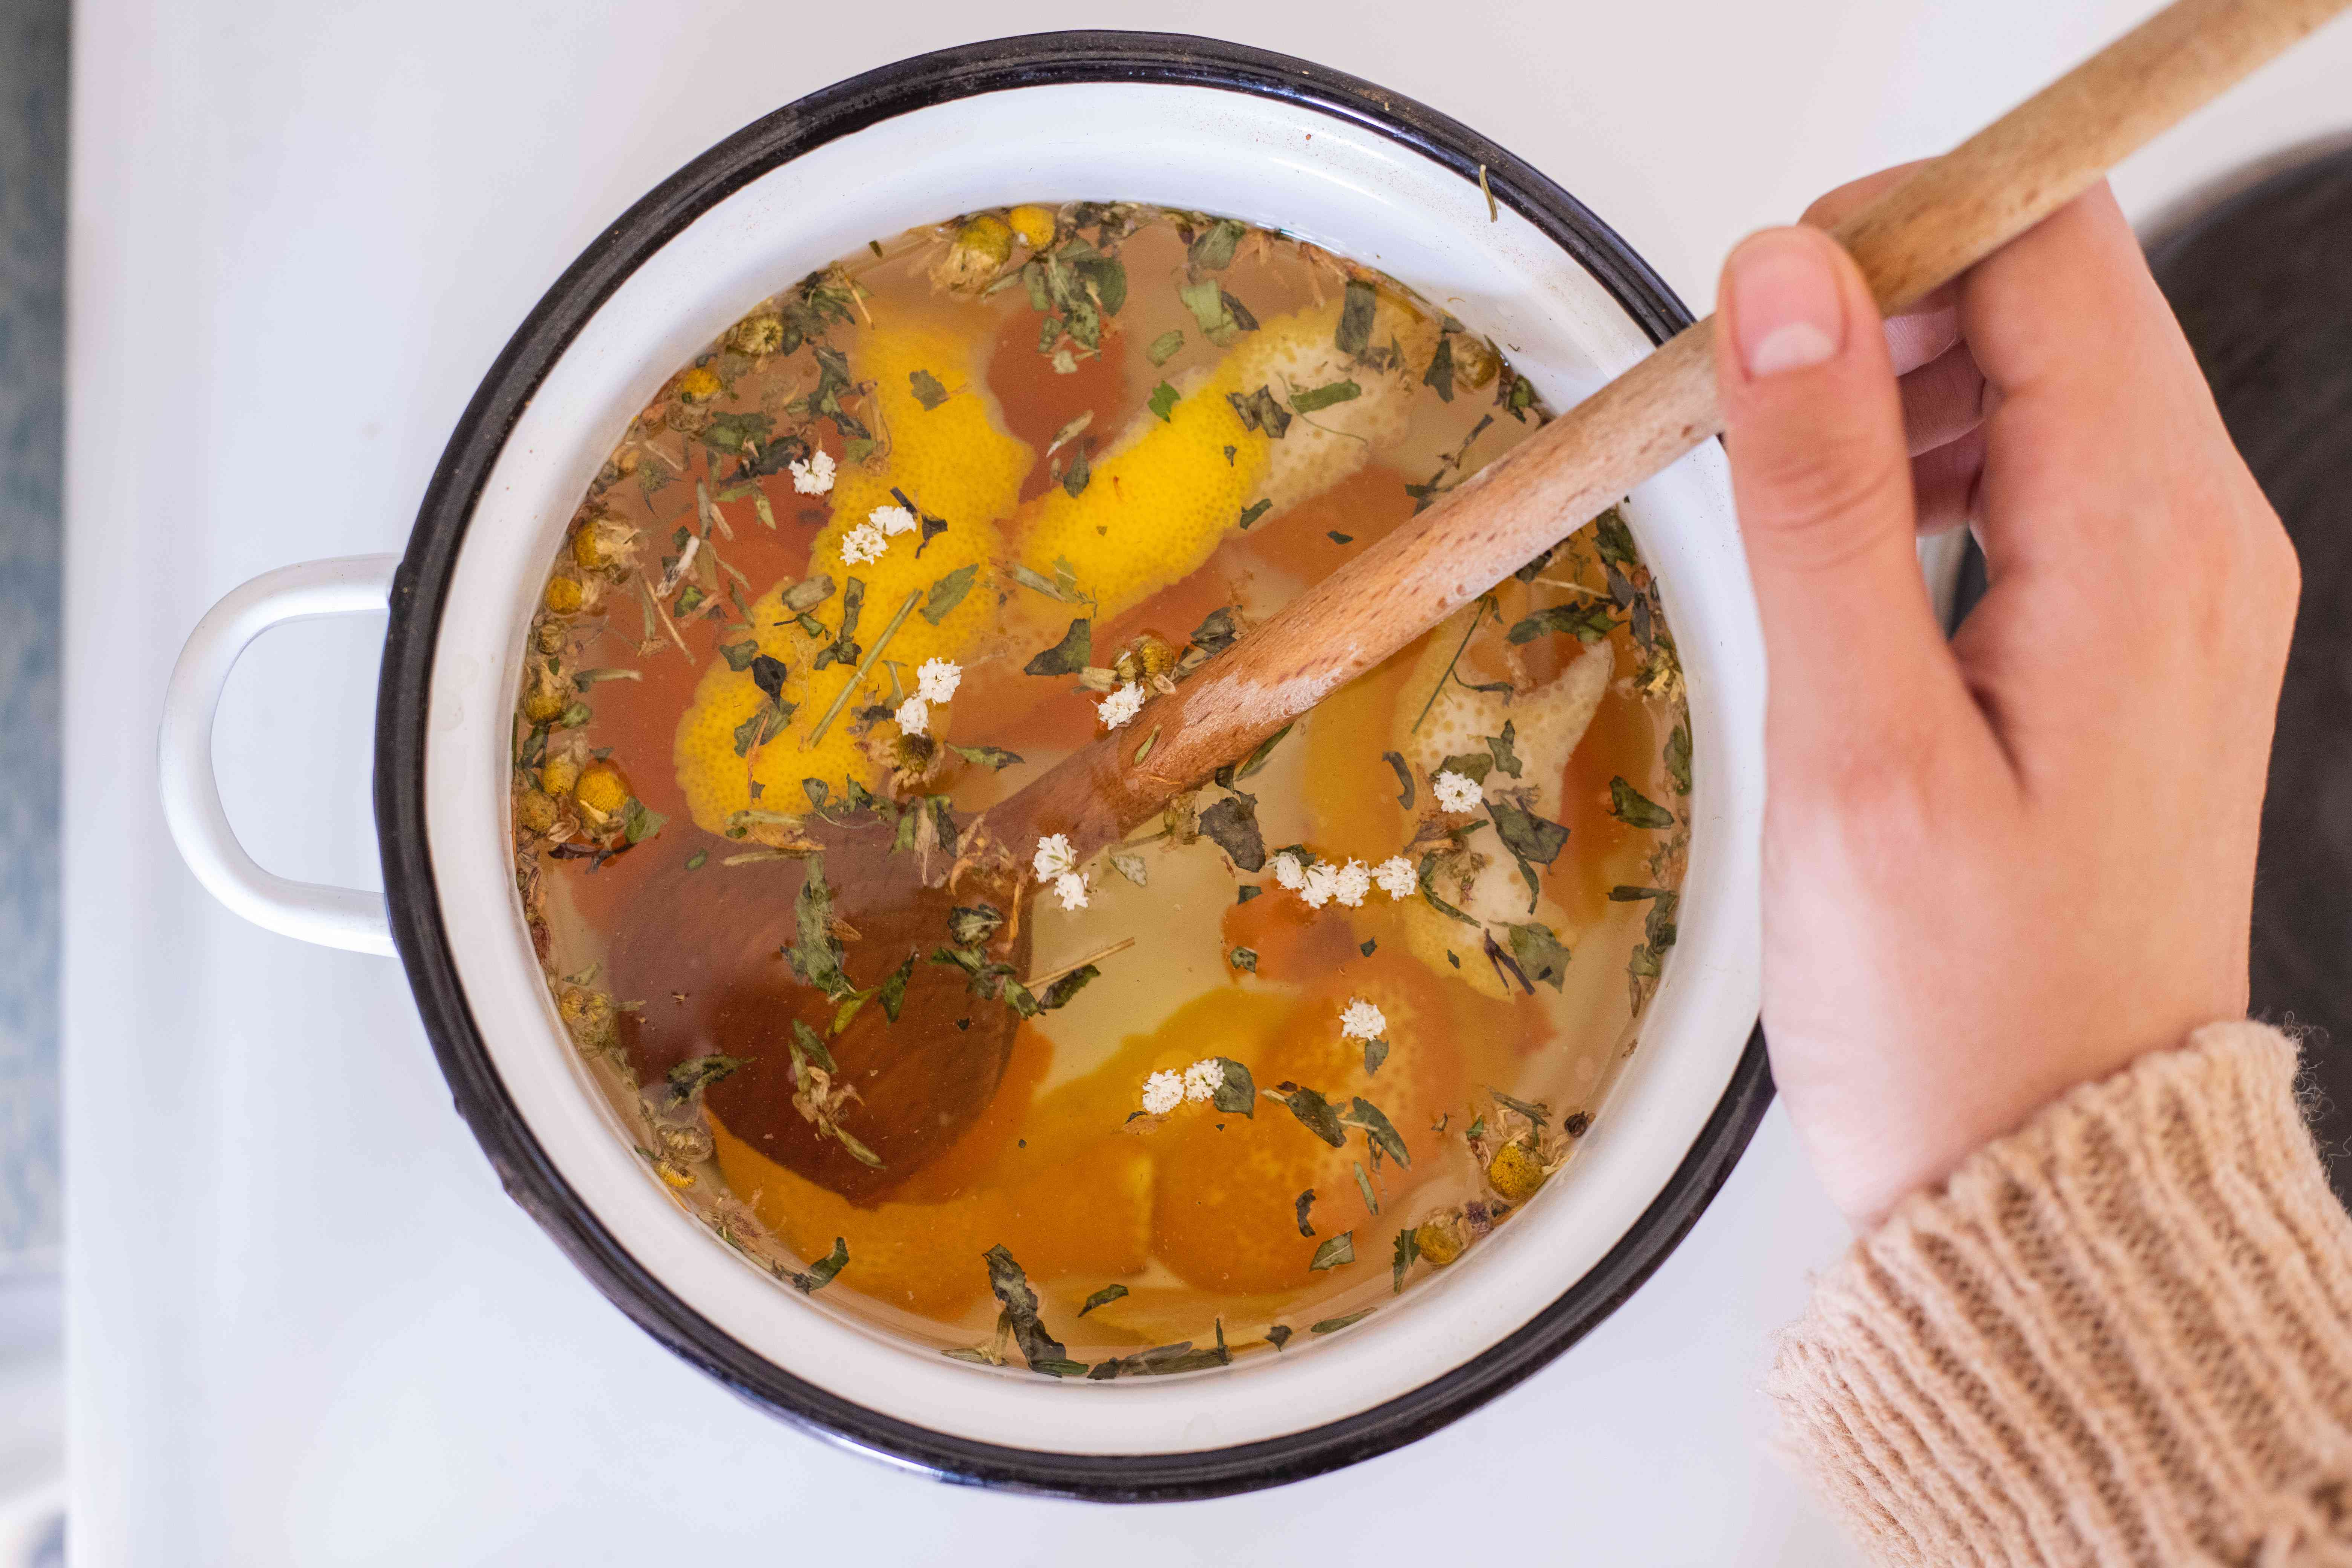 hand stirs pot of warm water and expired spices to make a fragrant potpourri on stove